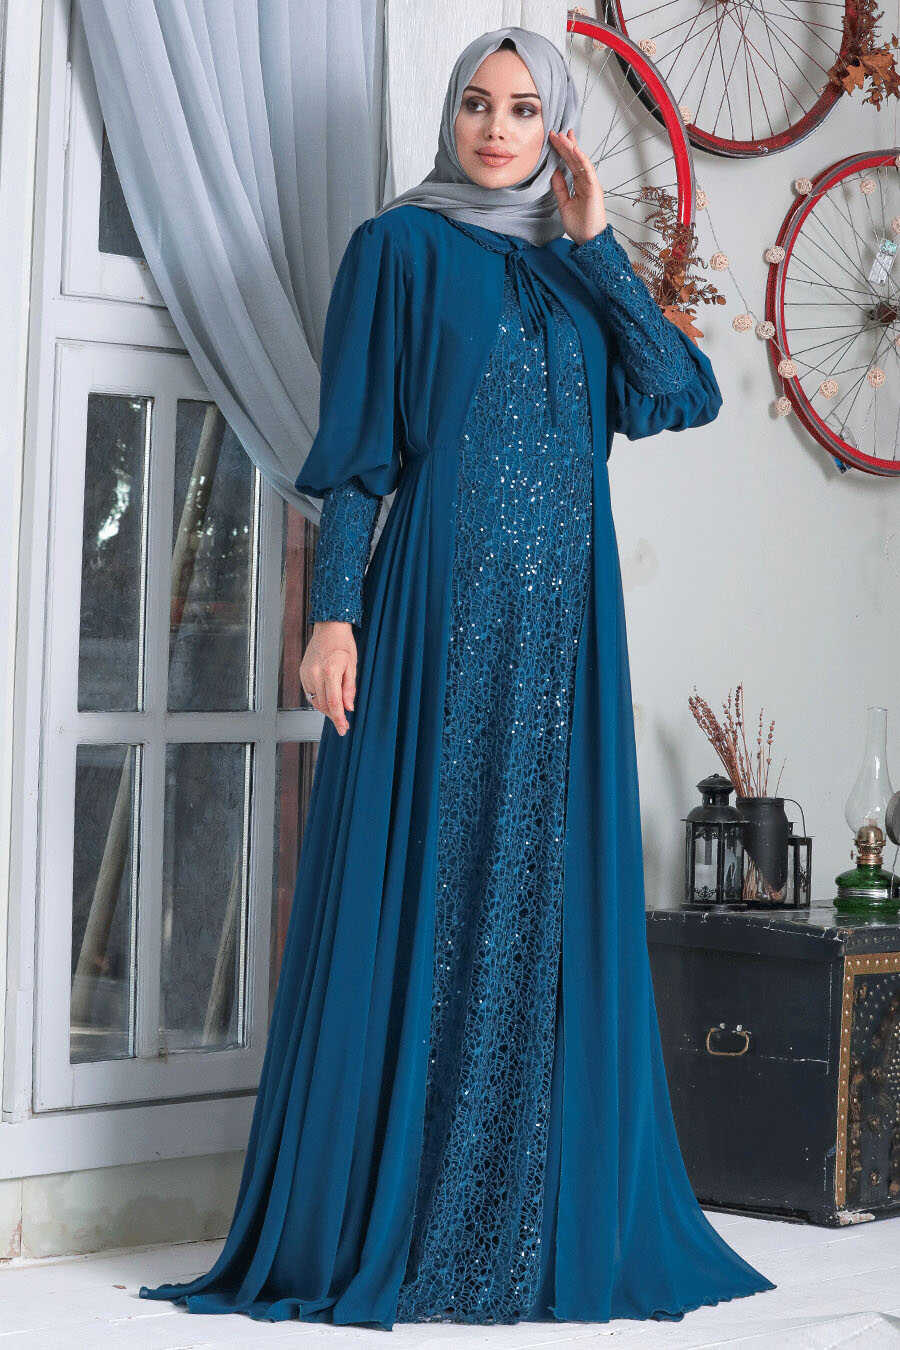 İndigo Blue Hijab Evening Dress 50090IM